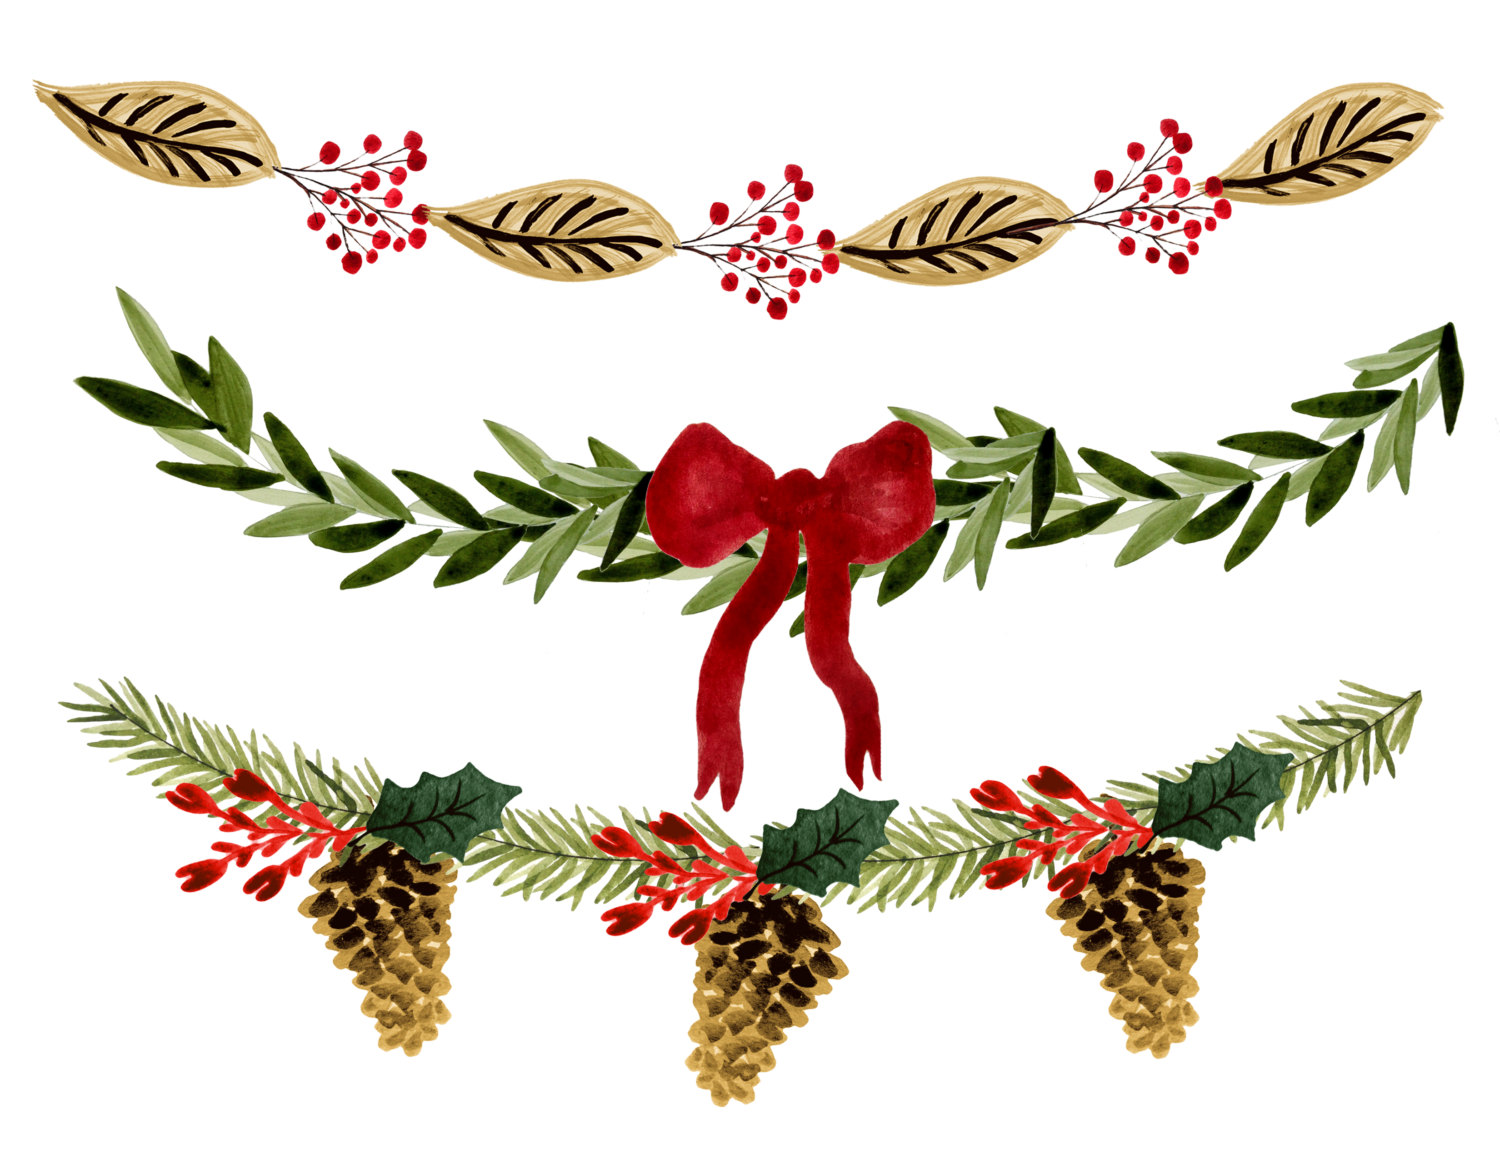 Christmas Garland Clipart.Holiday Garland Clipart Free Download Best Holiday Garland